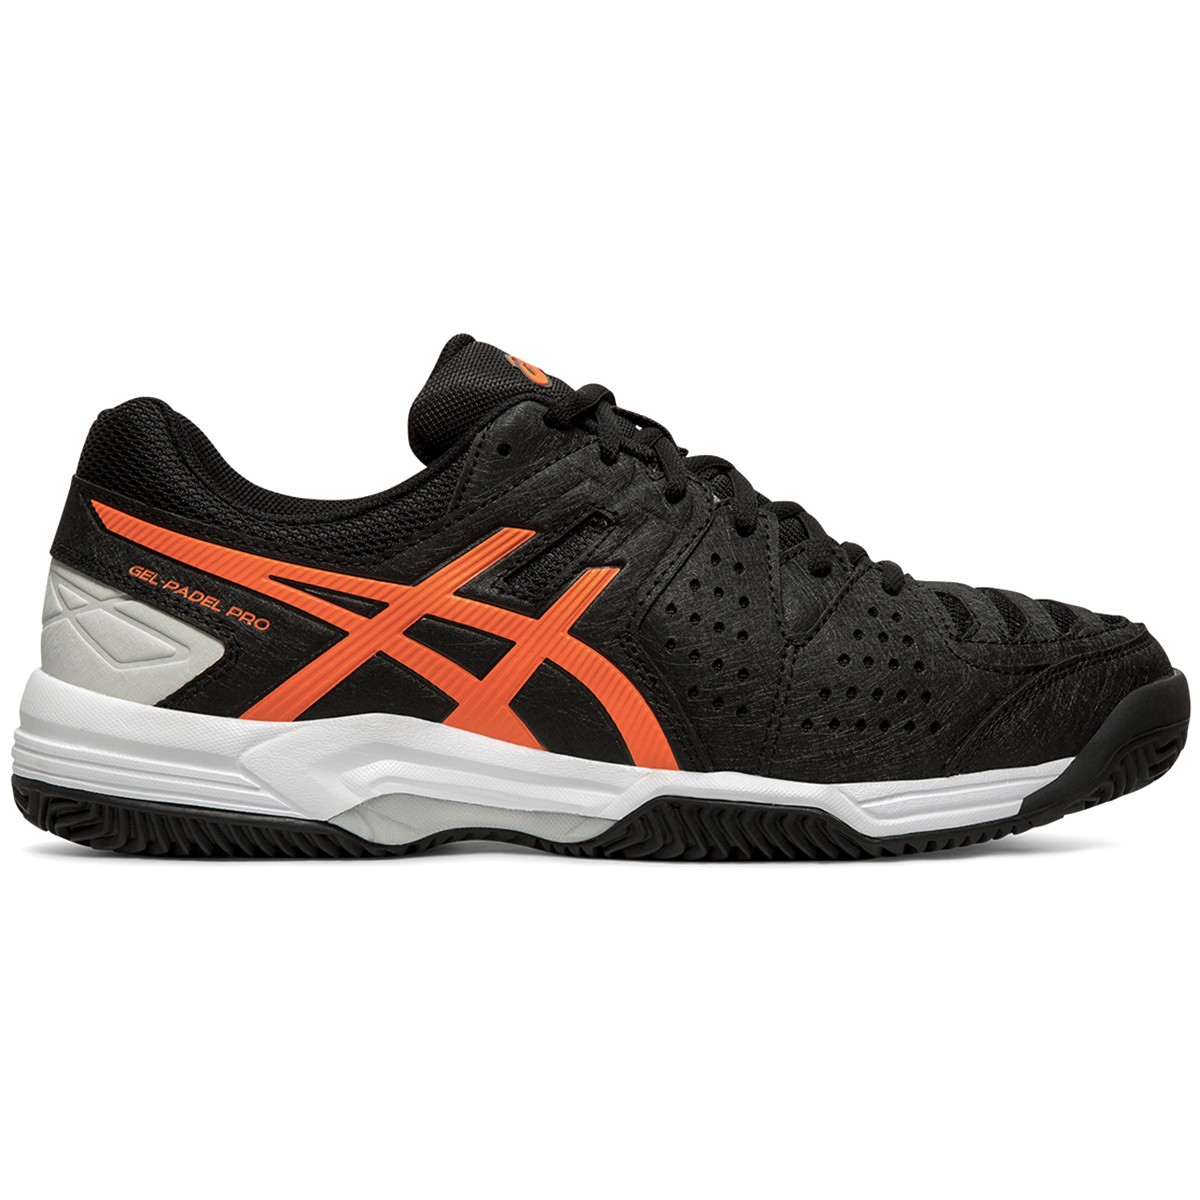 CHAUSSURES ASICS GEL PADEL PRO 3 SG TERRE BATTUE